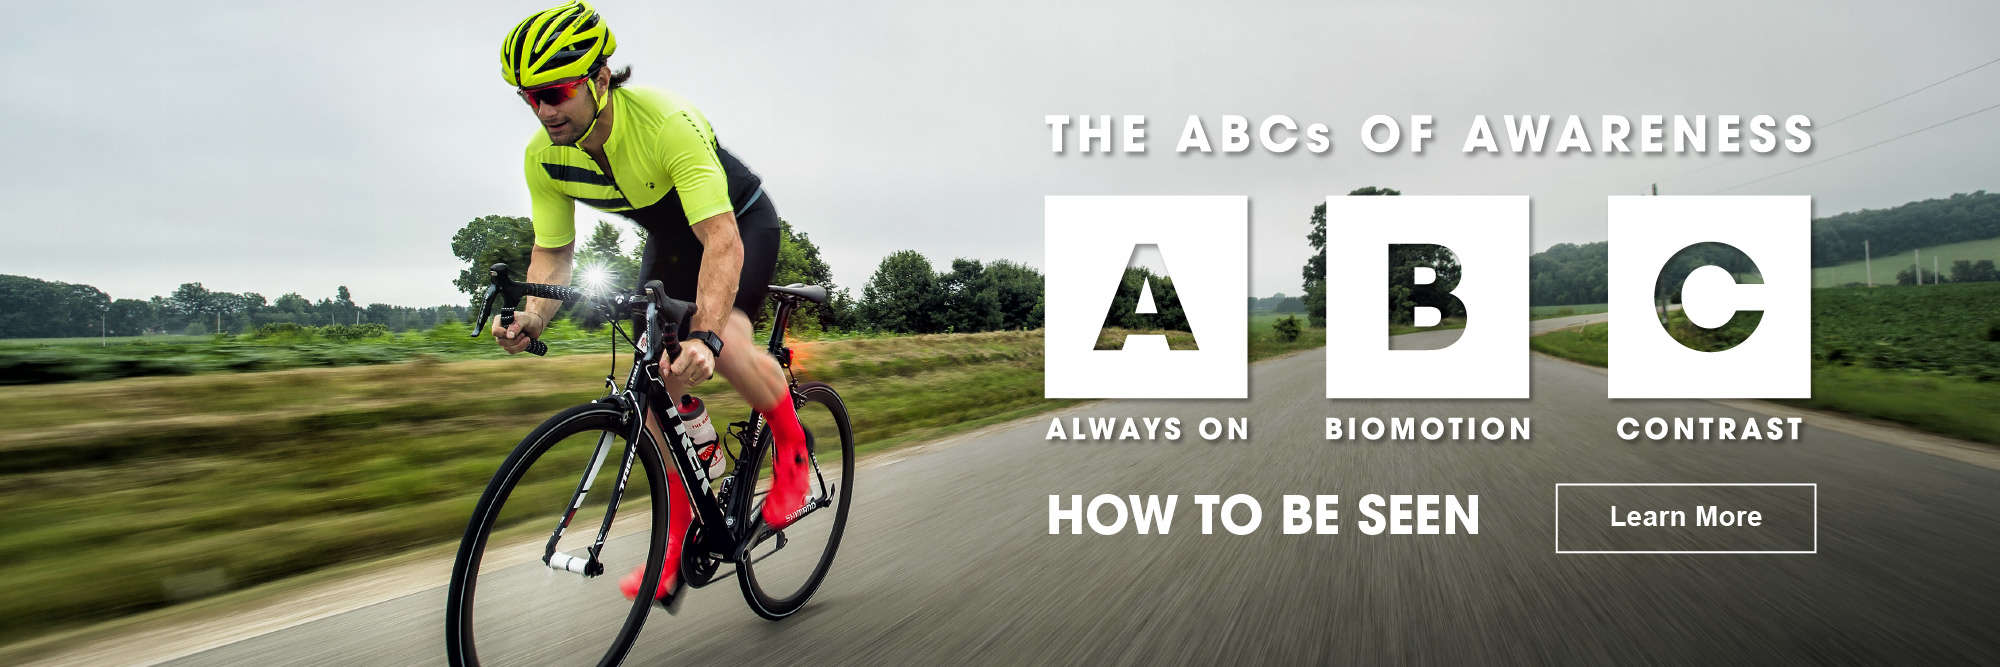 The ABCs of Awareness: How to be seen